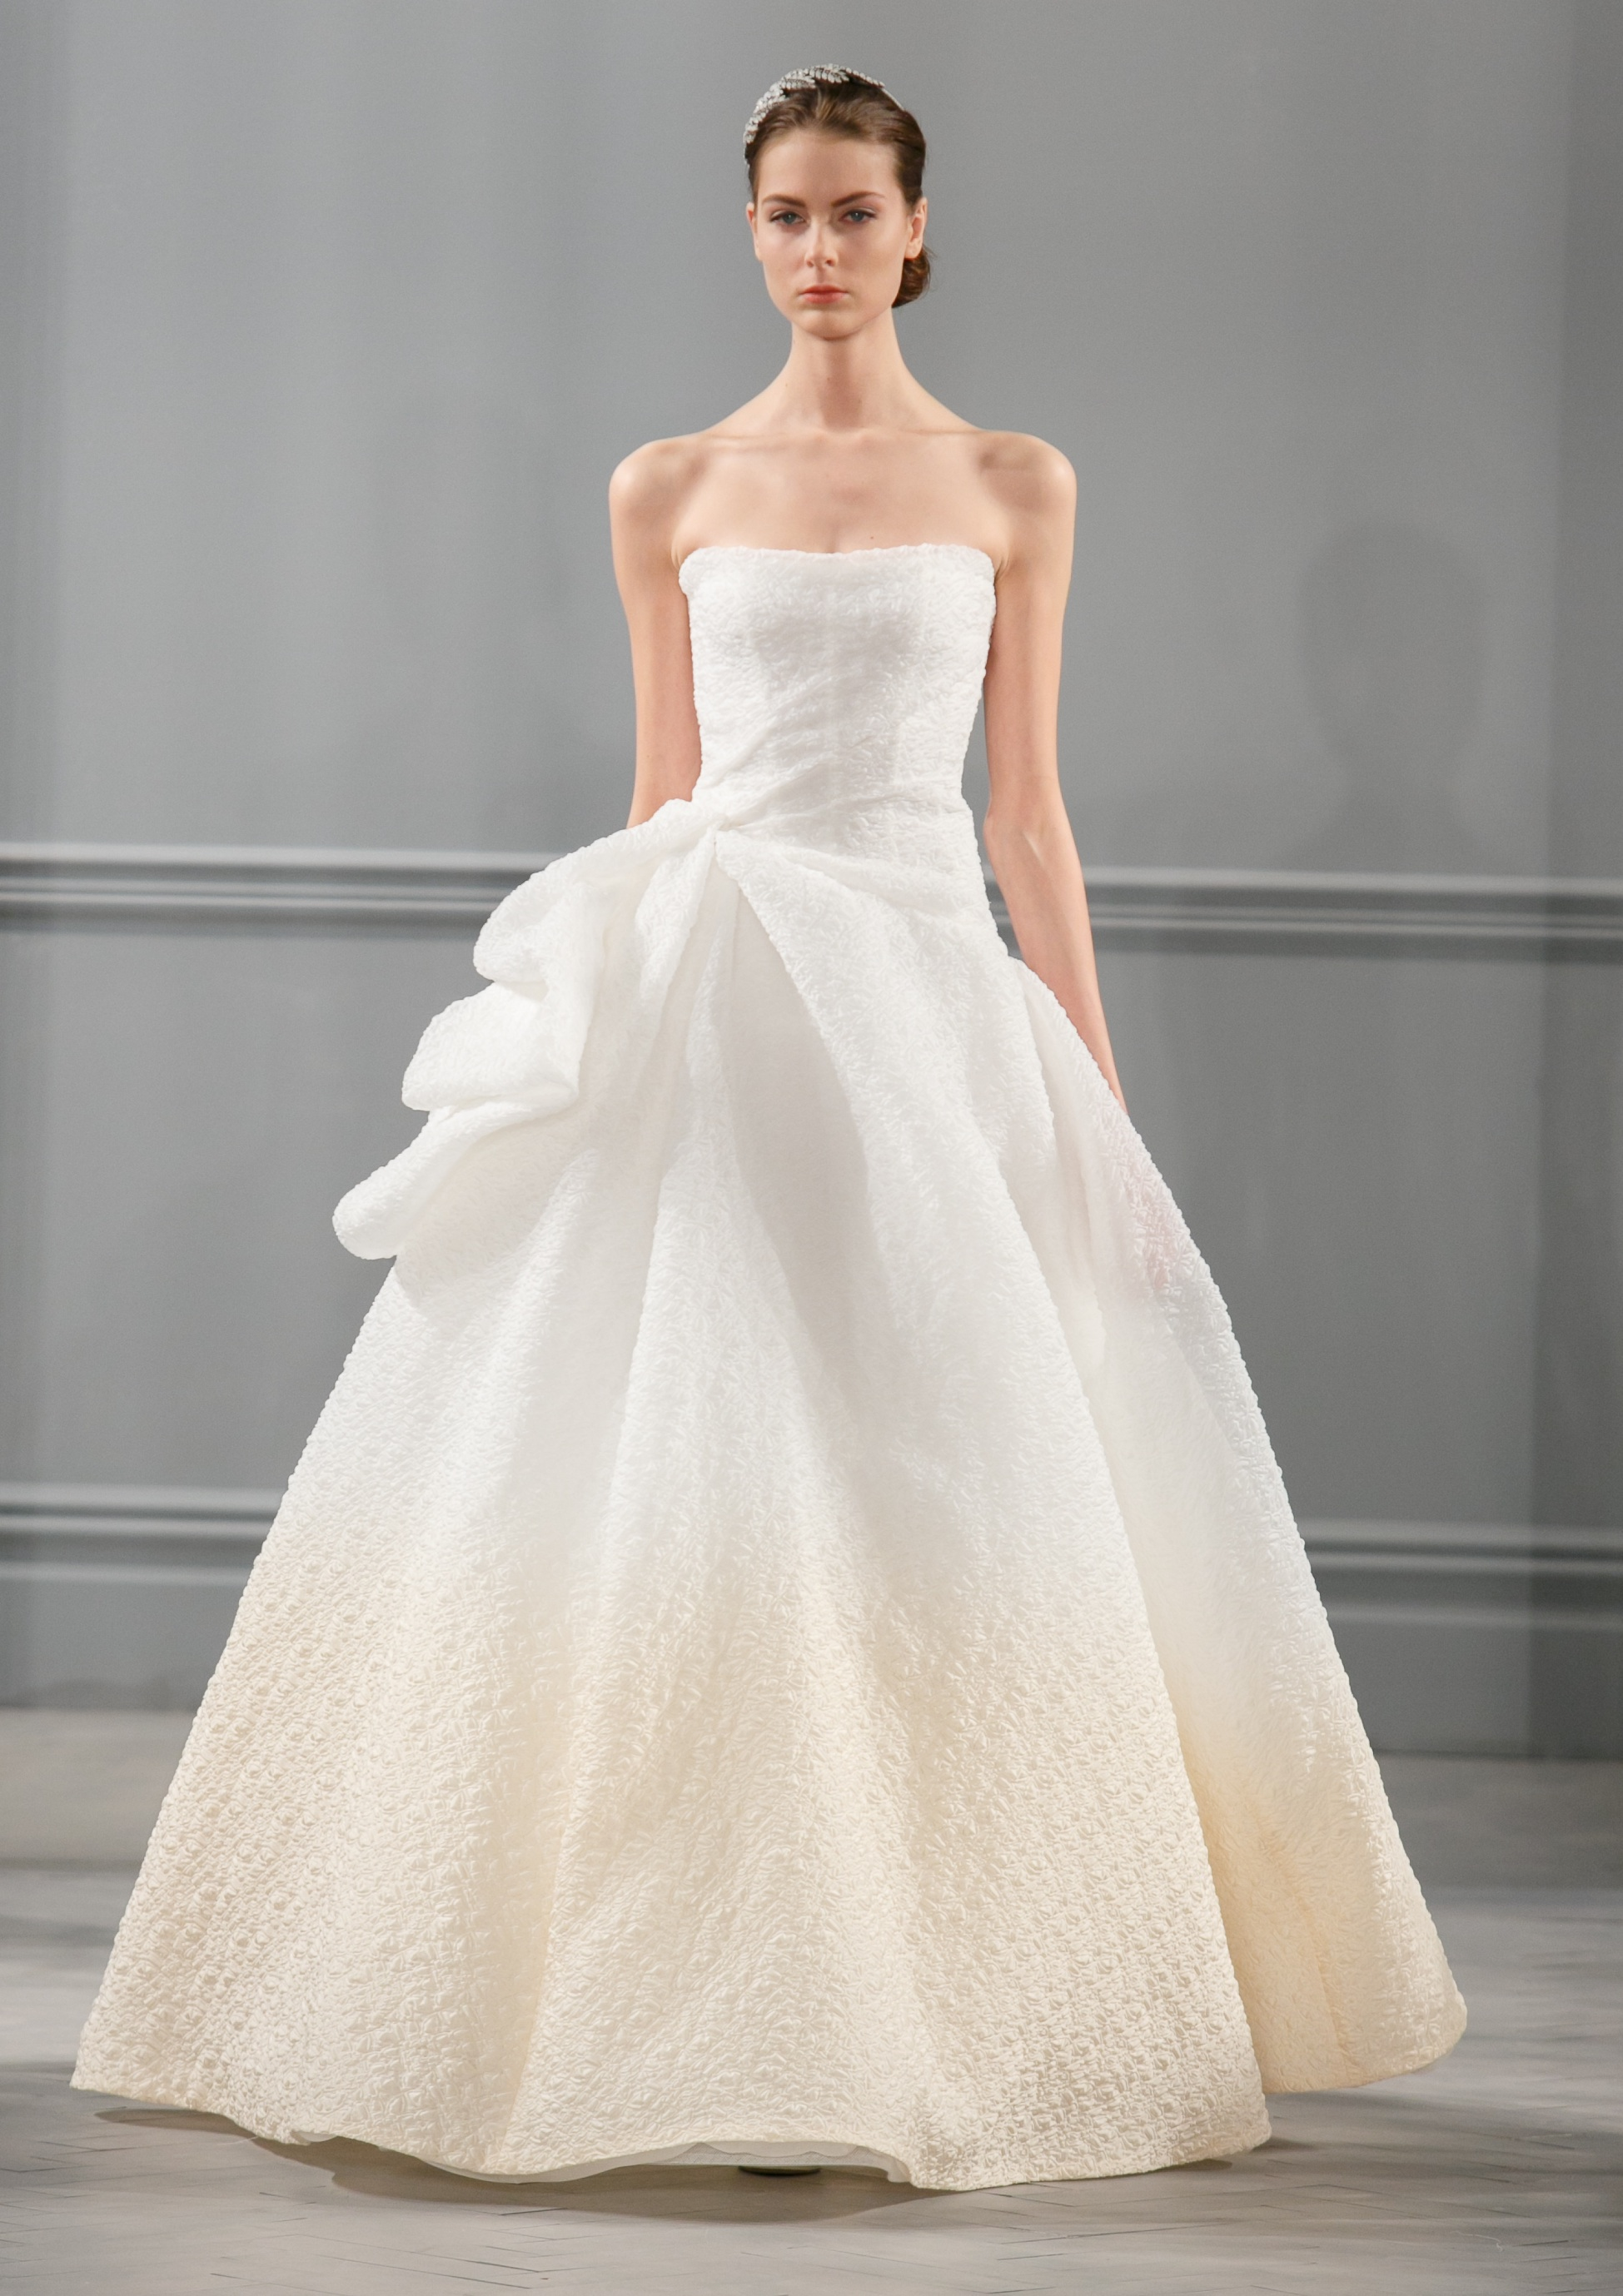 Spring 2014 wedding dress monique lhuillier bridal paris for Monique lhuillier wedding dress